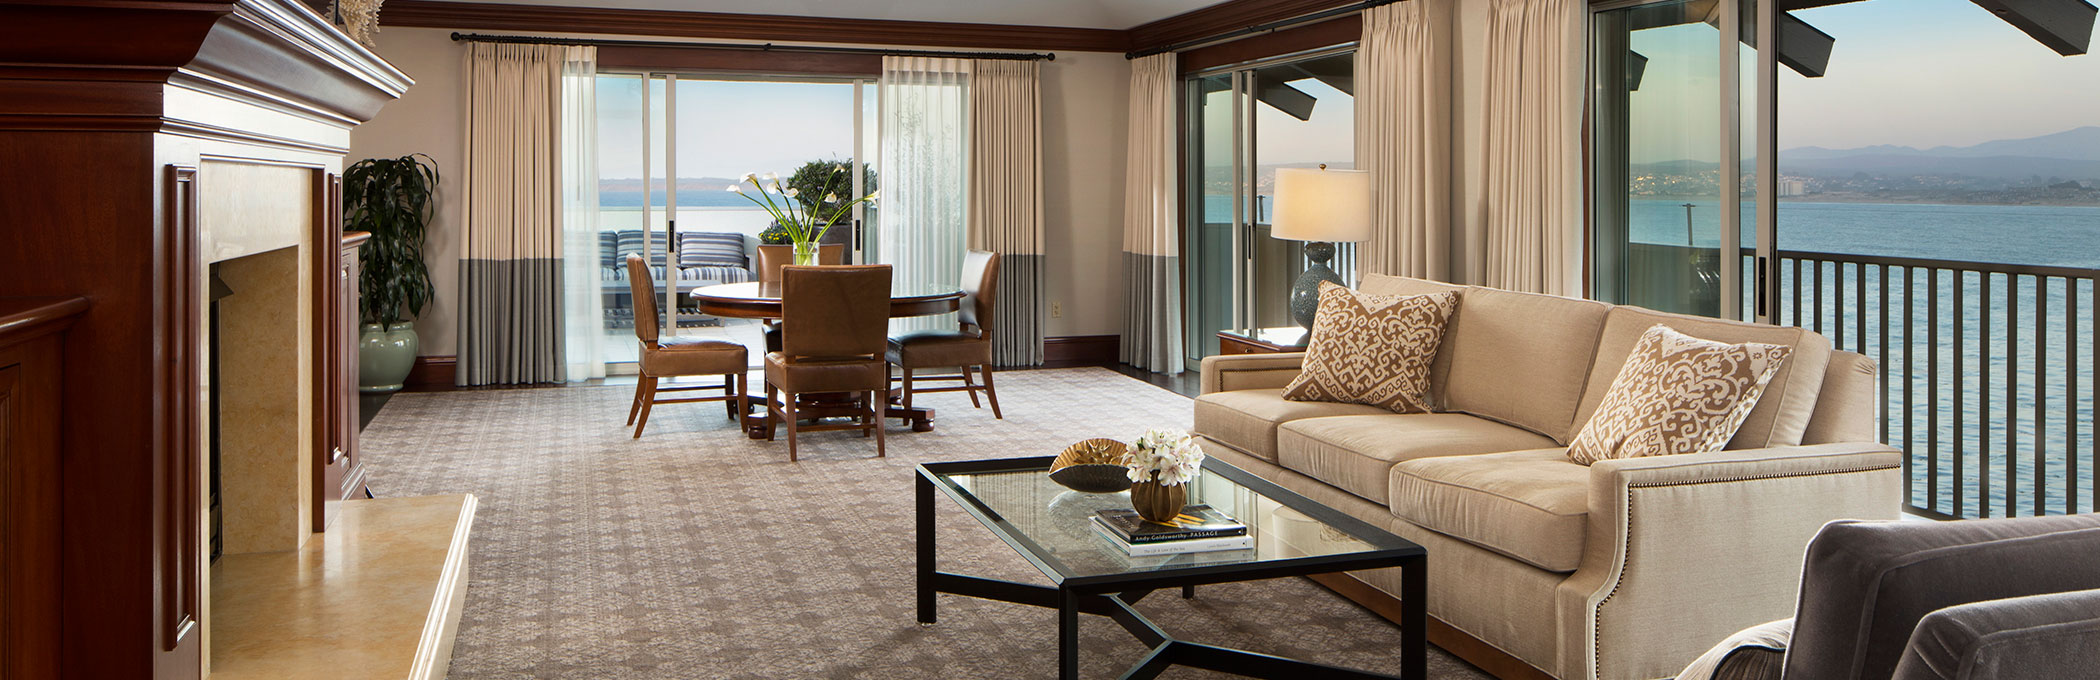 luxury suite with ocean view overlooking the ocean